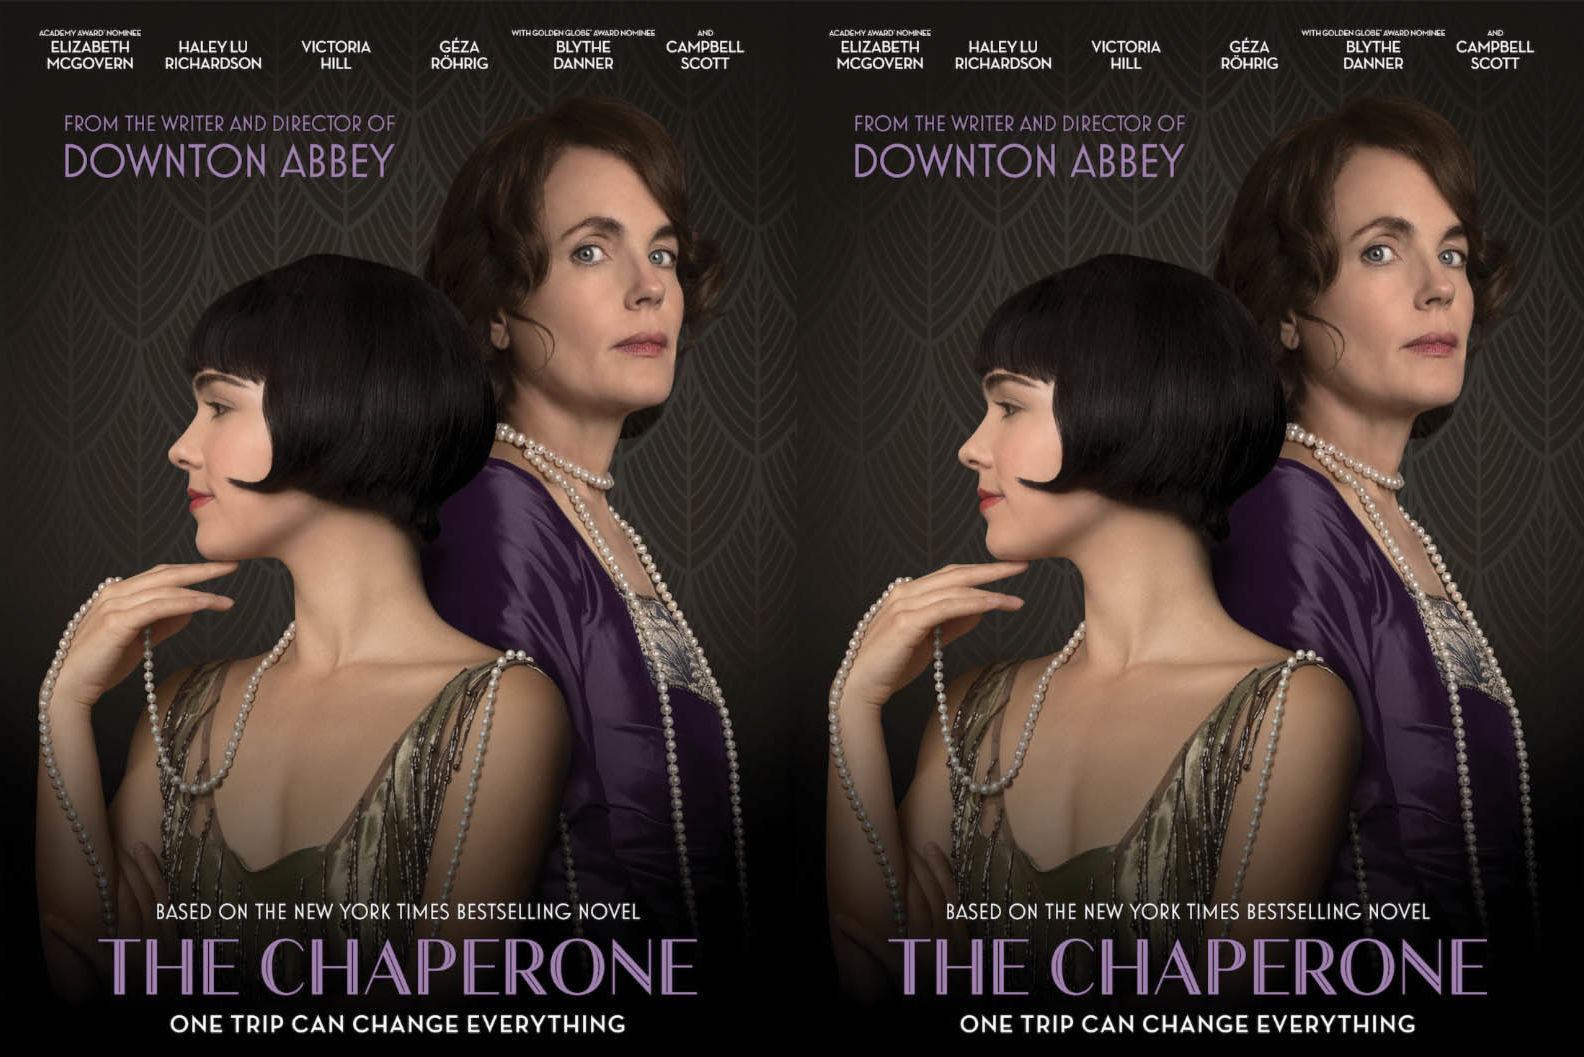 Masterpiece's First Feature Film Reunites Two Familiar 'Downton Abbey' Names